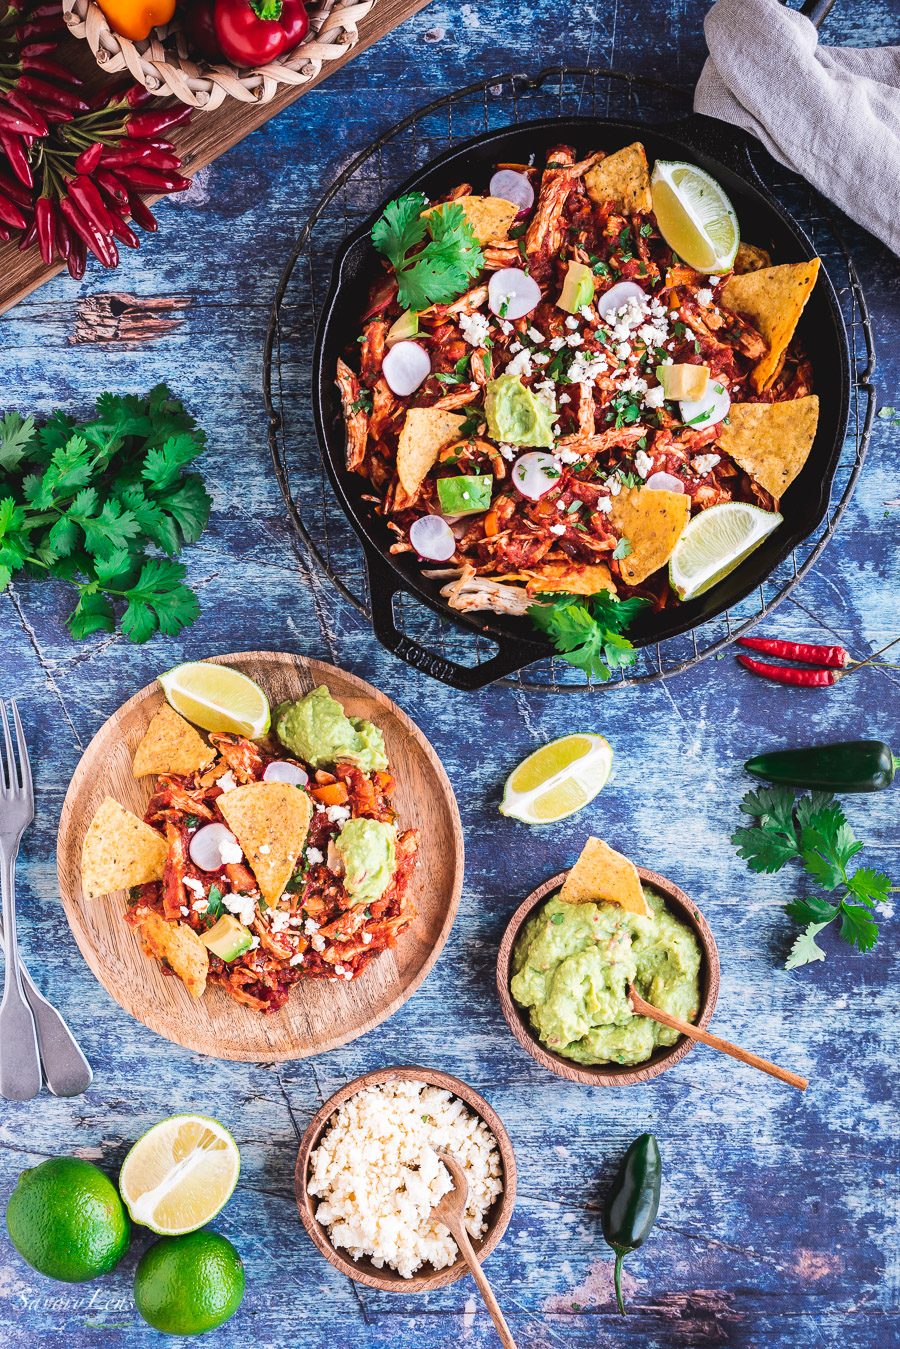 Chilaquiles Rojos mit Hühnchen